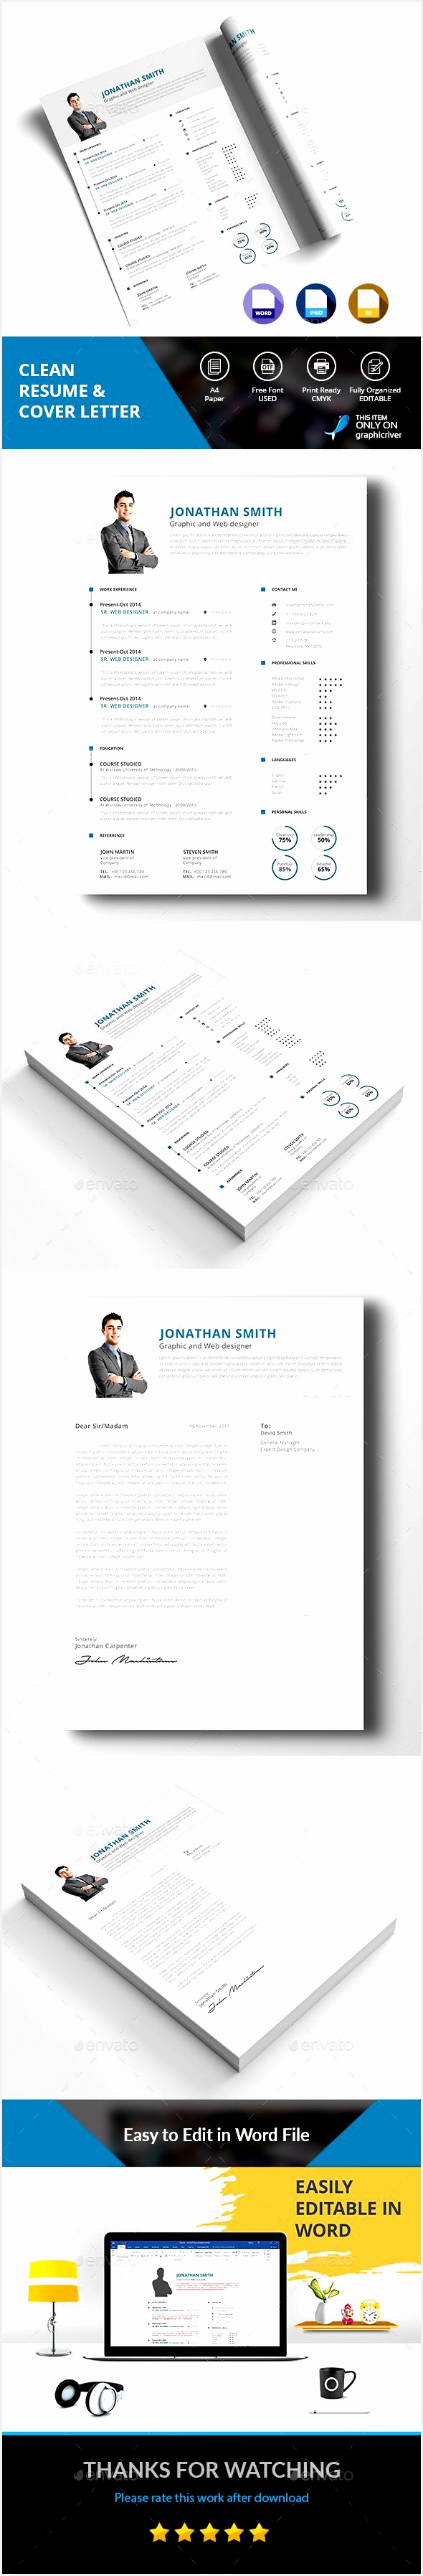 20 Lovely Resume Templates In Word format Pics3590590